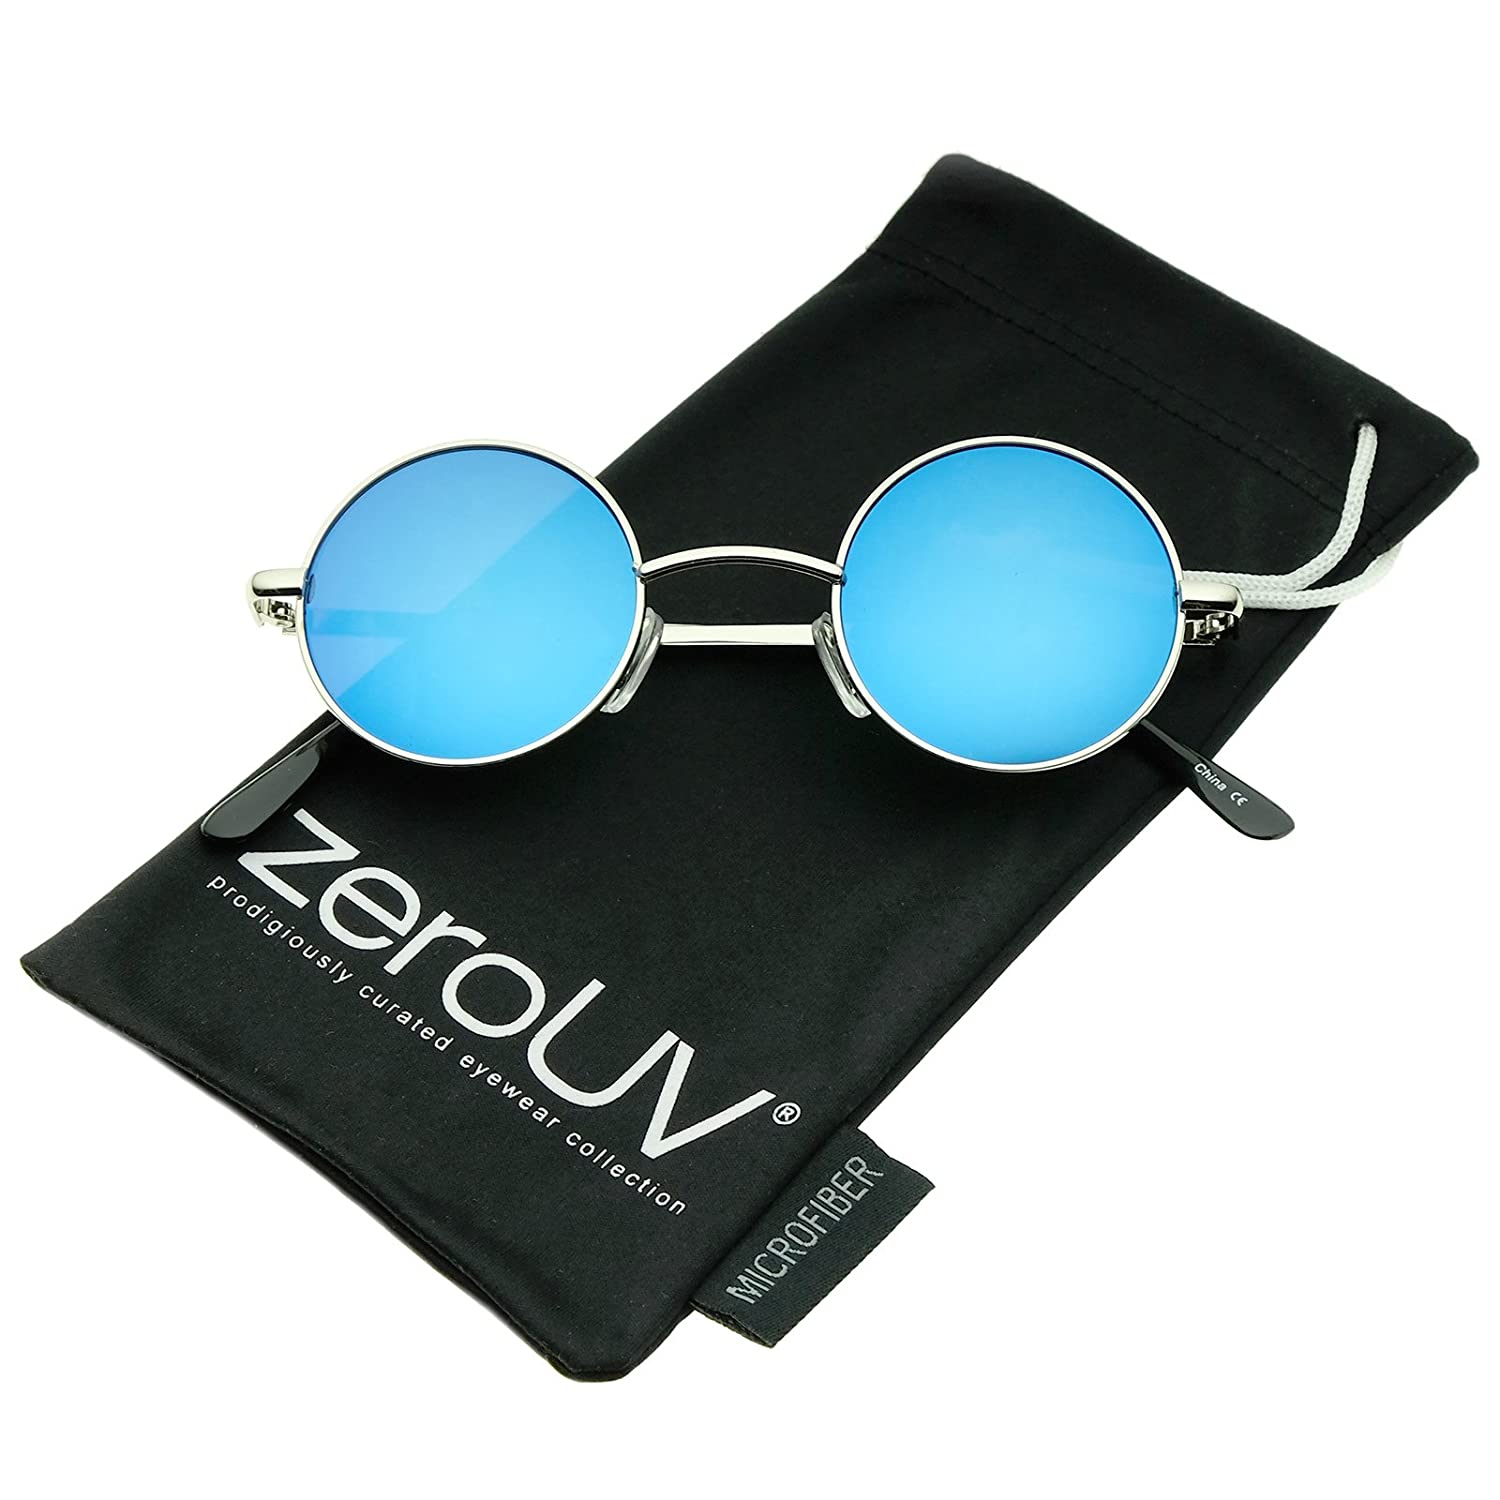 a463c07261a Amazon.com  Small Retro Lennon Style Colored Mirror Lens Round Metal  Sunglasses 41mm (Silver Blue Mirror)  Clothing